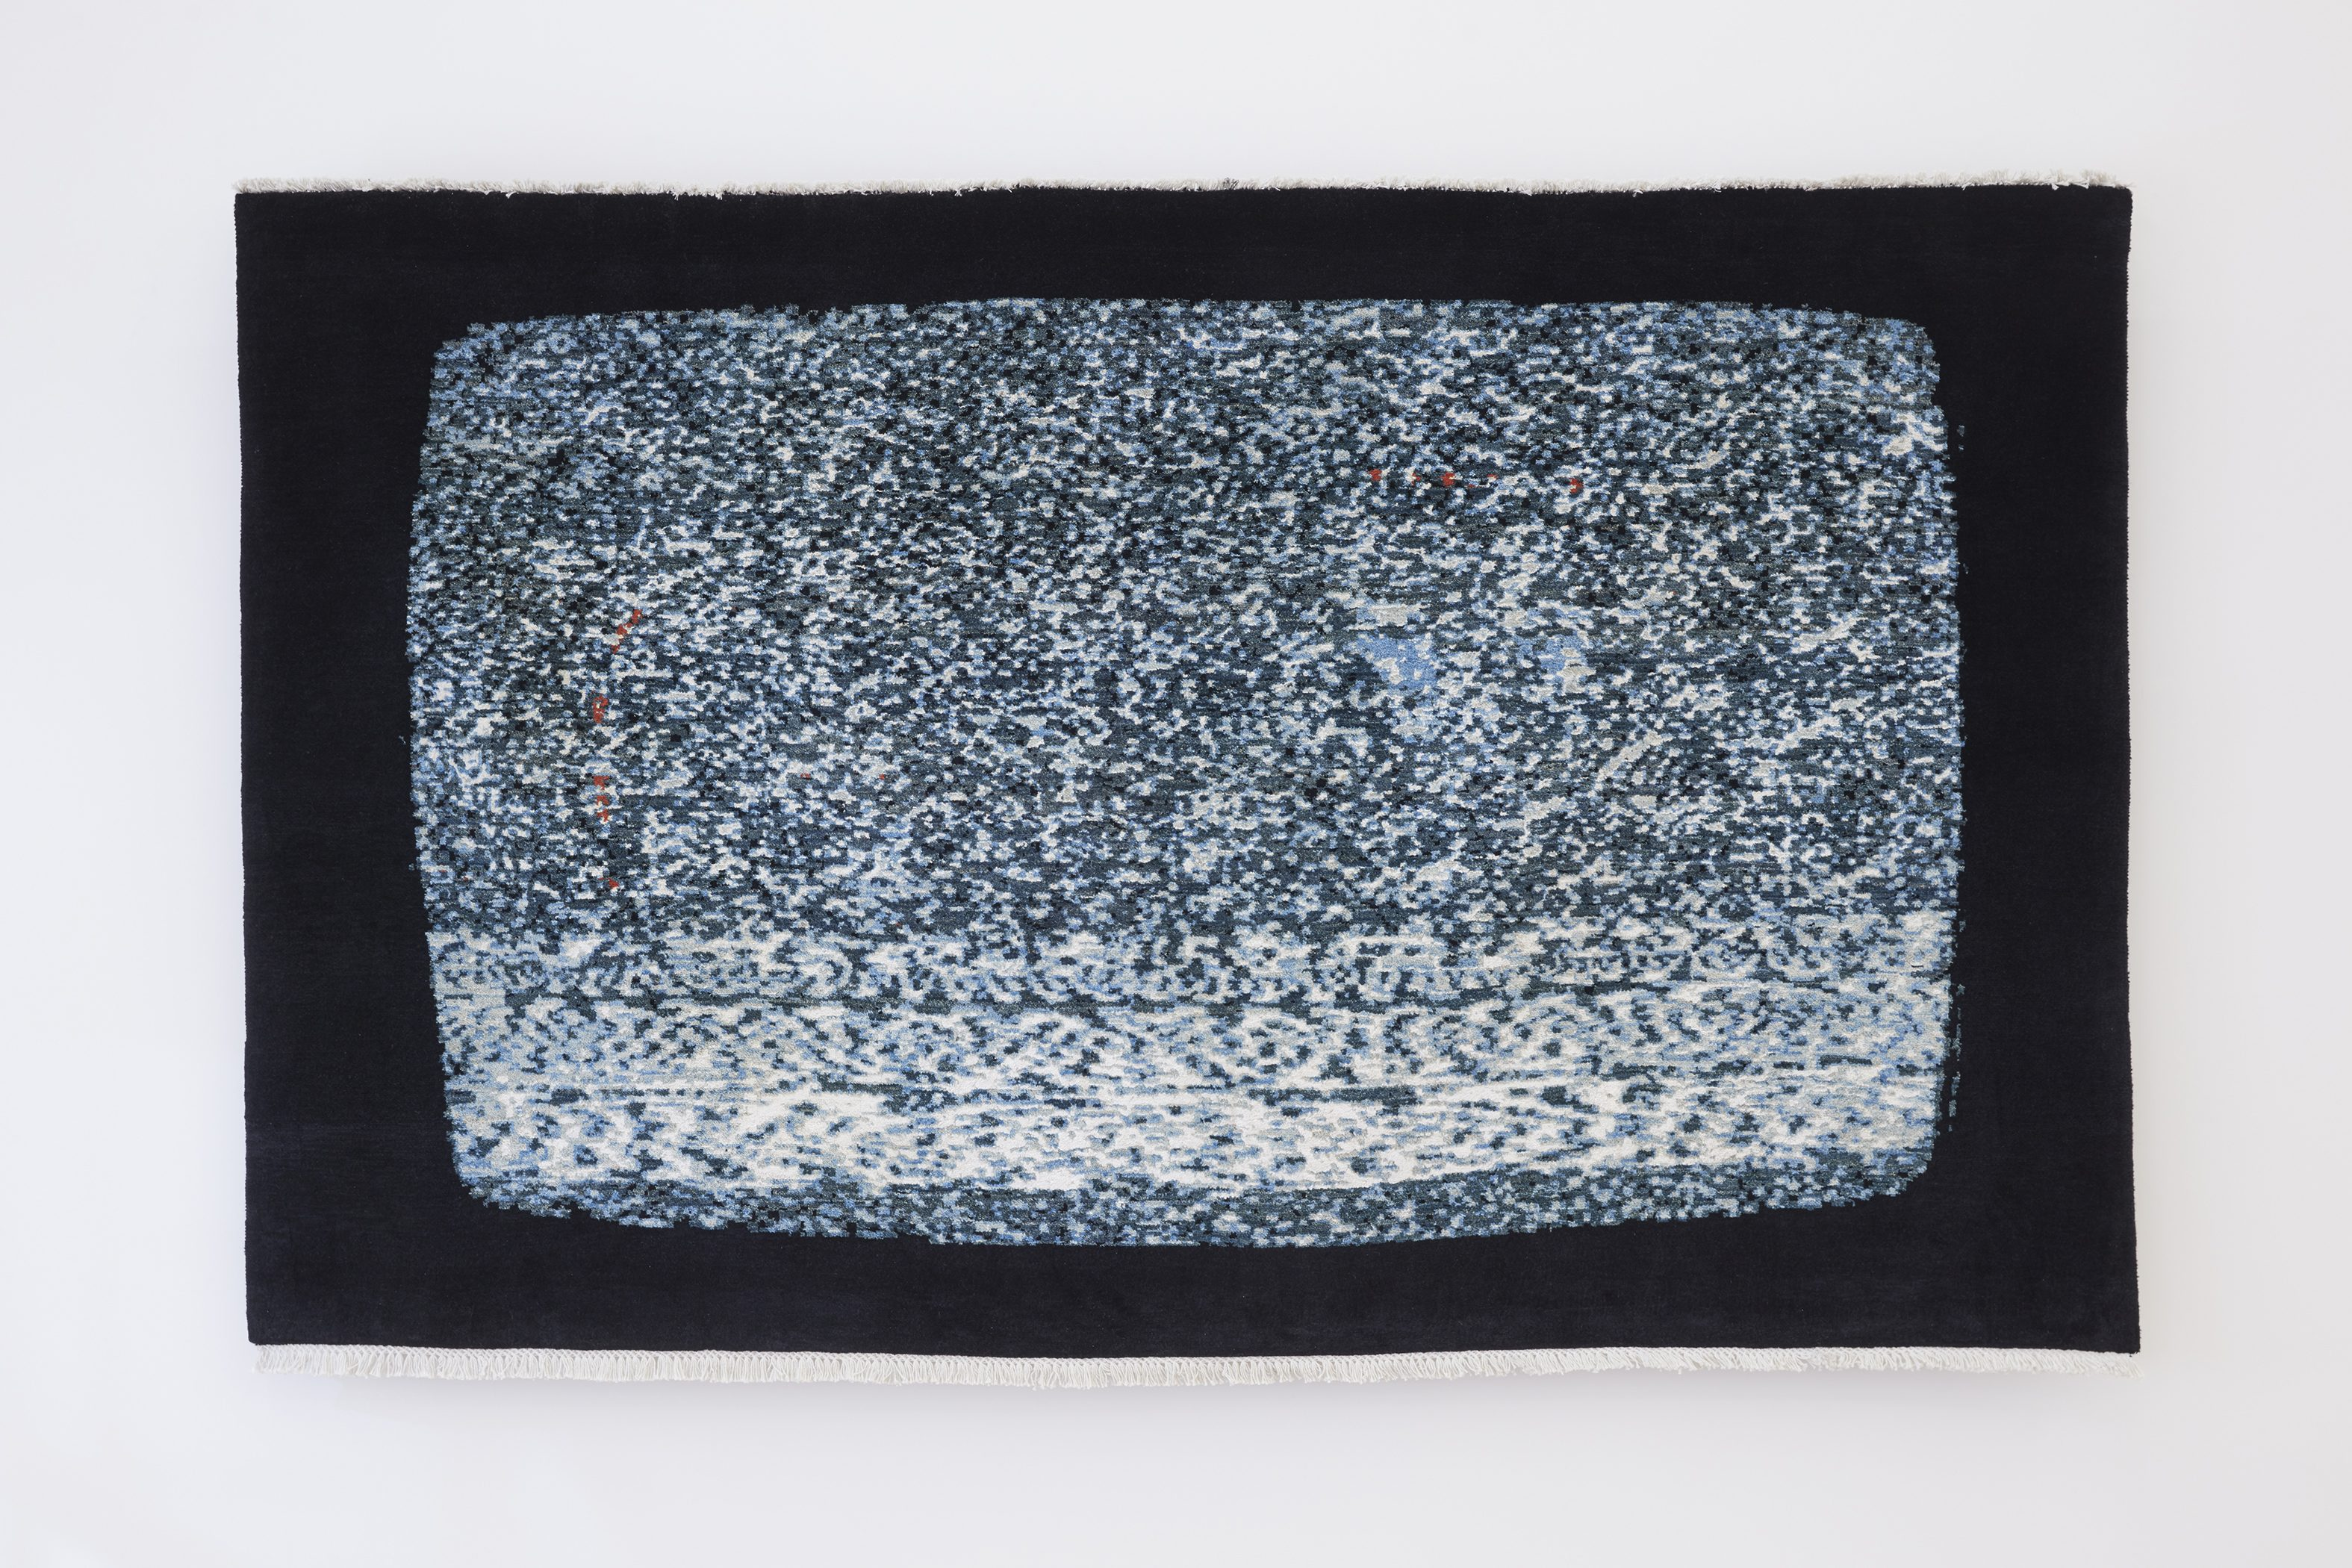 A large tapestry hanging on a white wall evokes a large T.V., registering only black and white static.